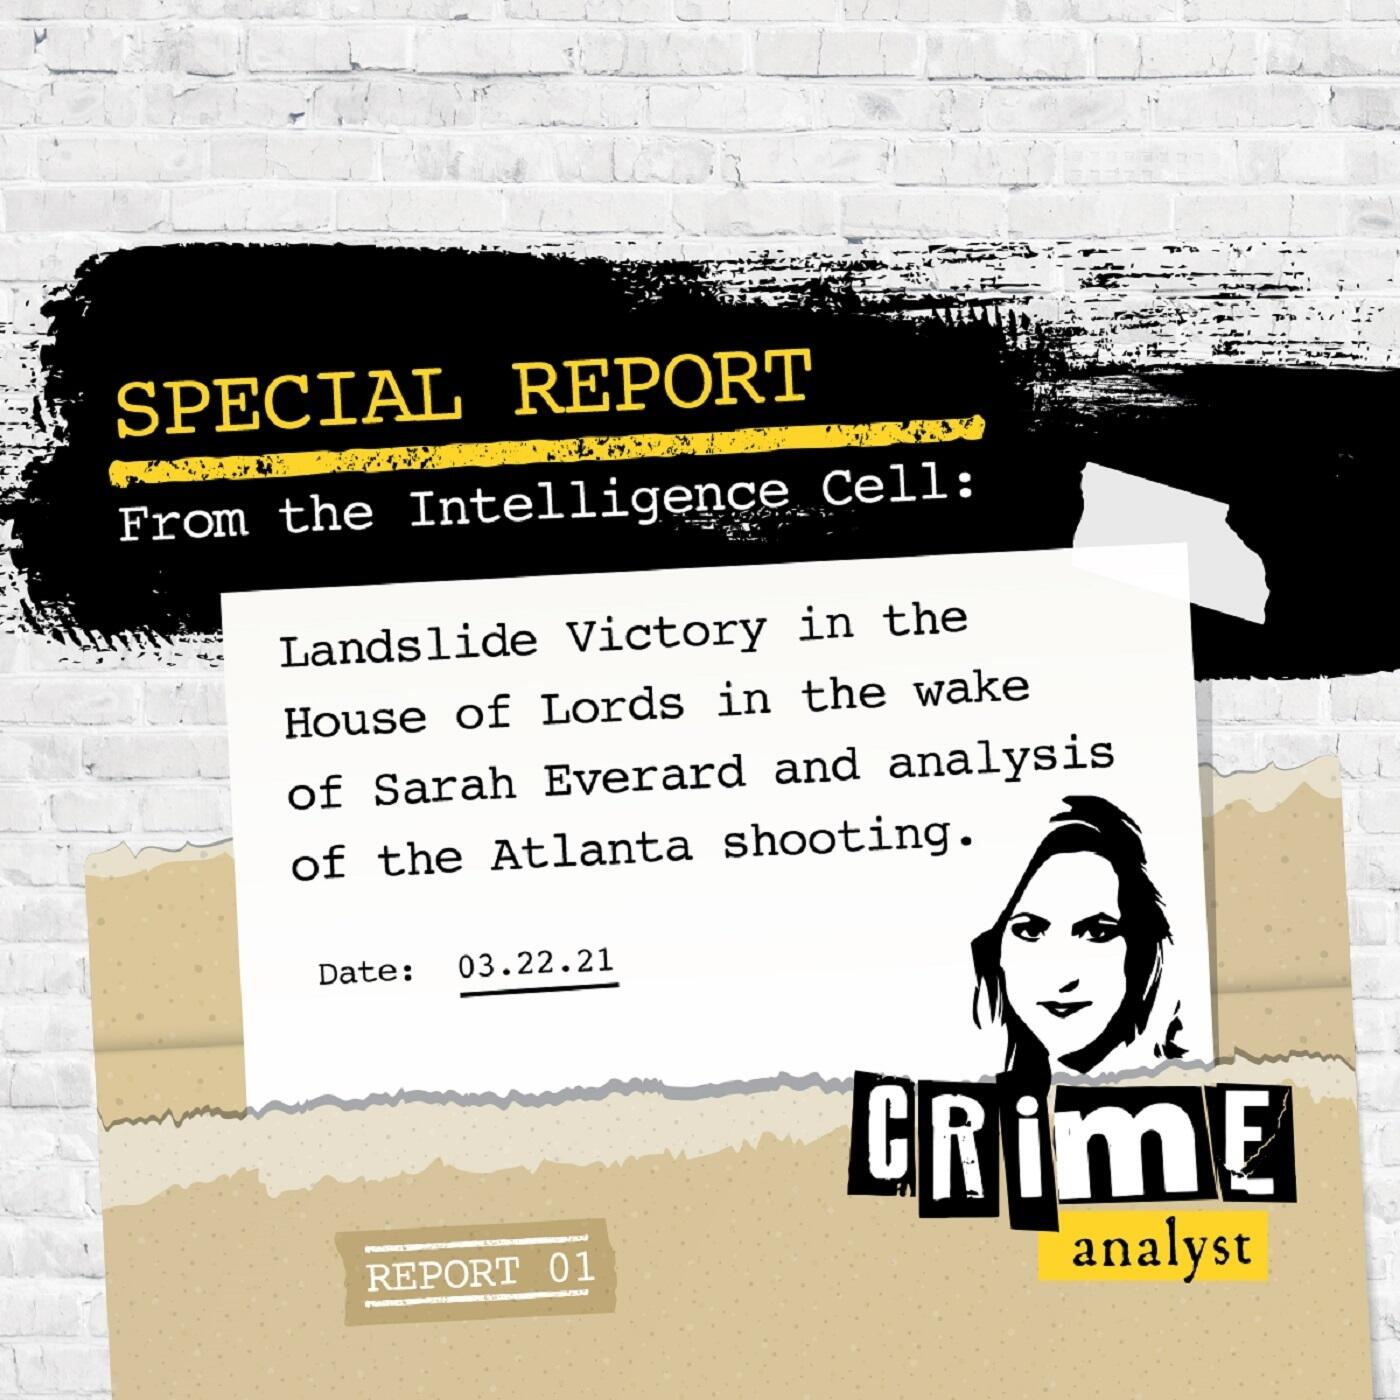 12: Special Report from the Intelligence Cell | Landslide Victory in the House of Lords in the Wake of Sarah Everard & Analysis of the Atlanta Shooting